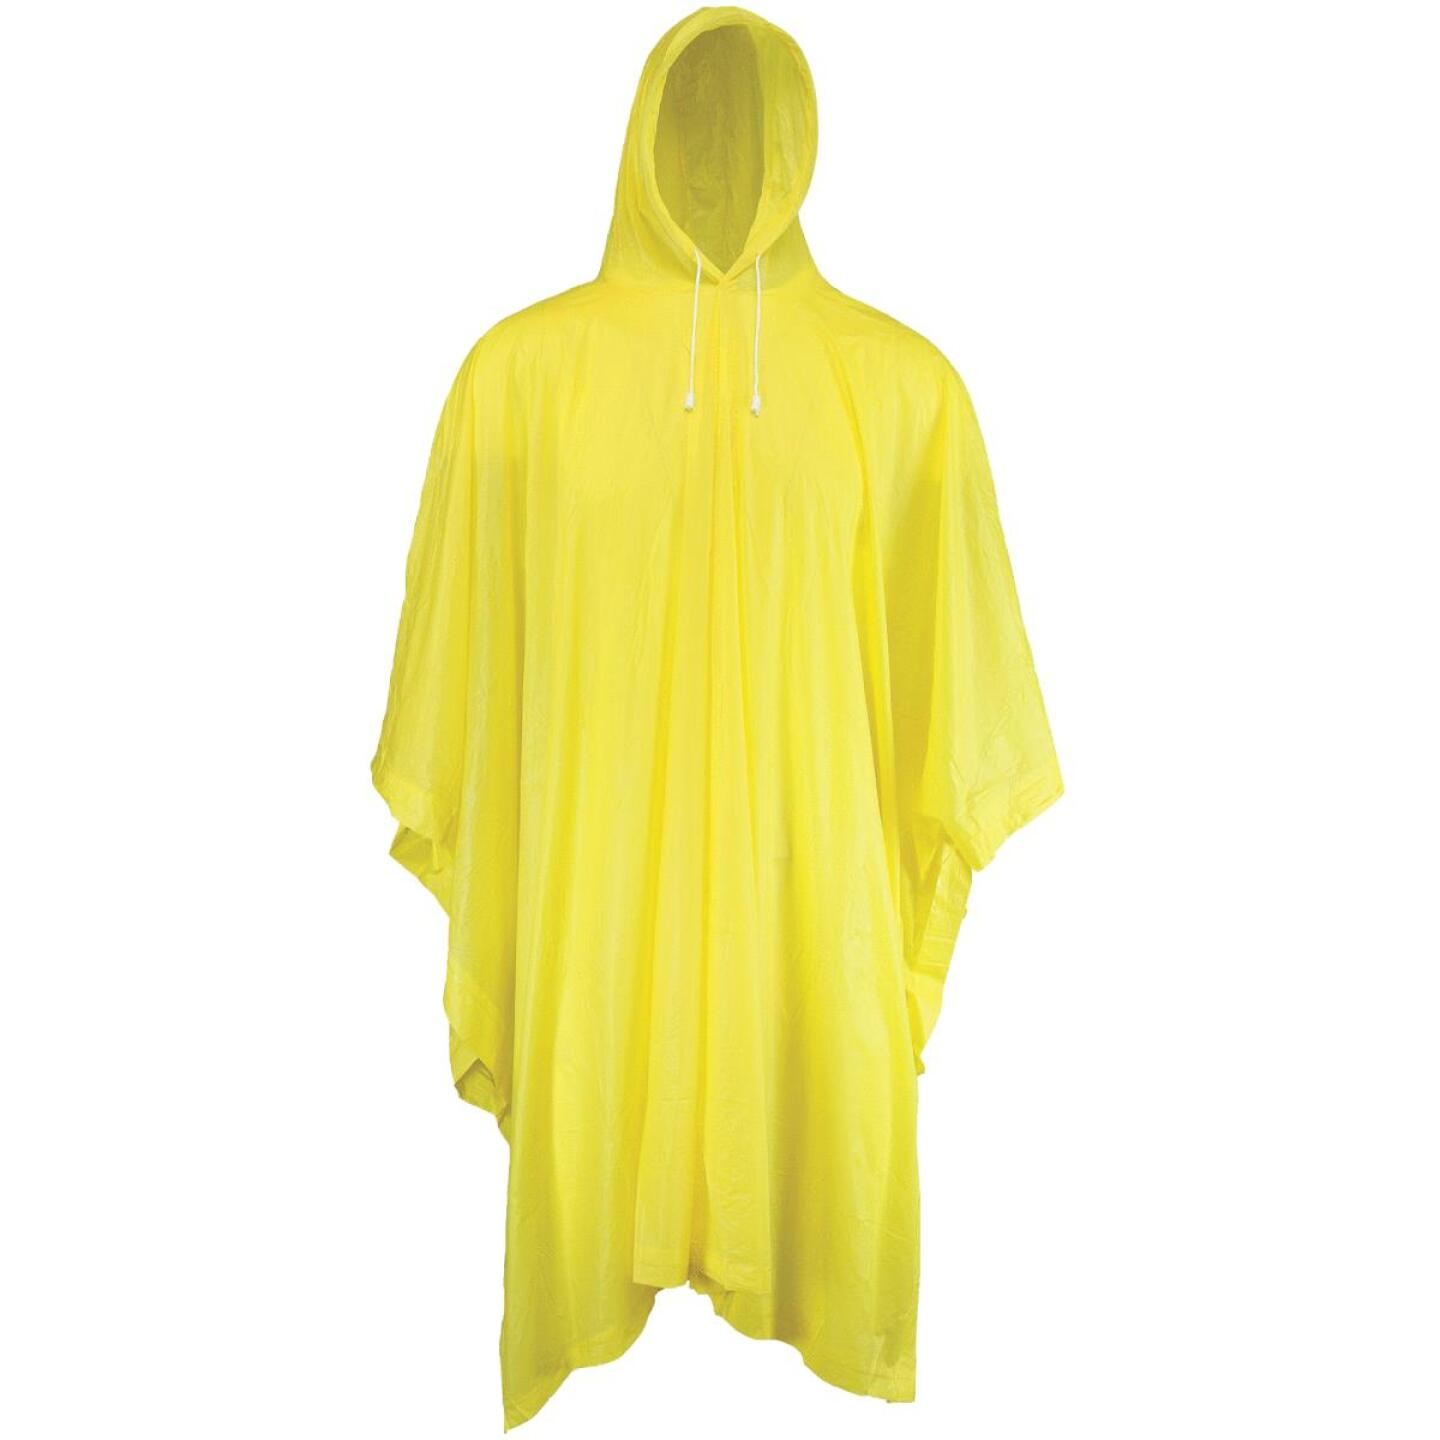 West Chester 50 In. x 80 In. Yellow Rain Poncho Image 1